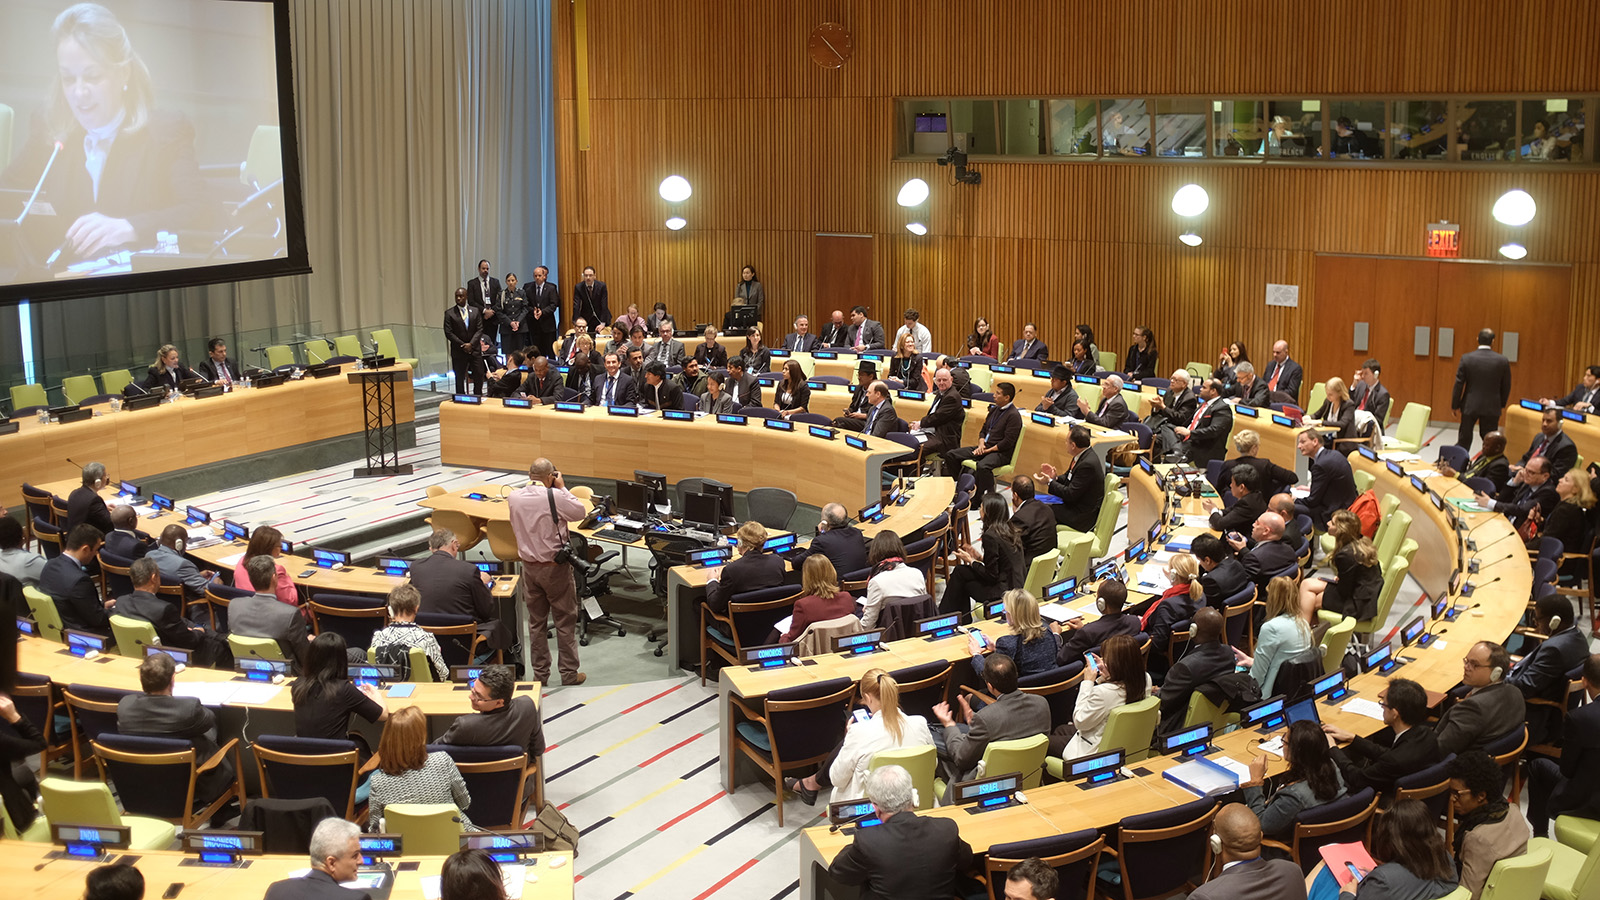 People meeting for a United Nations General Assembly session